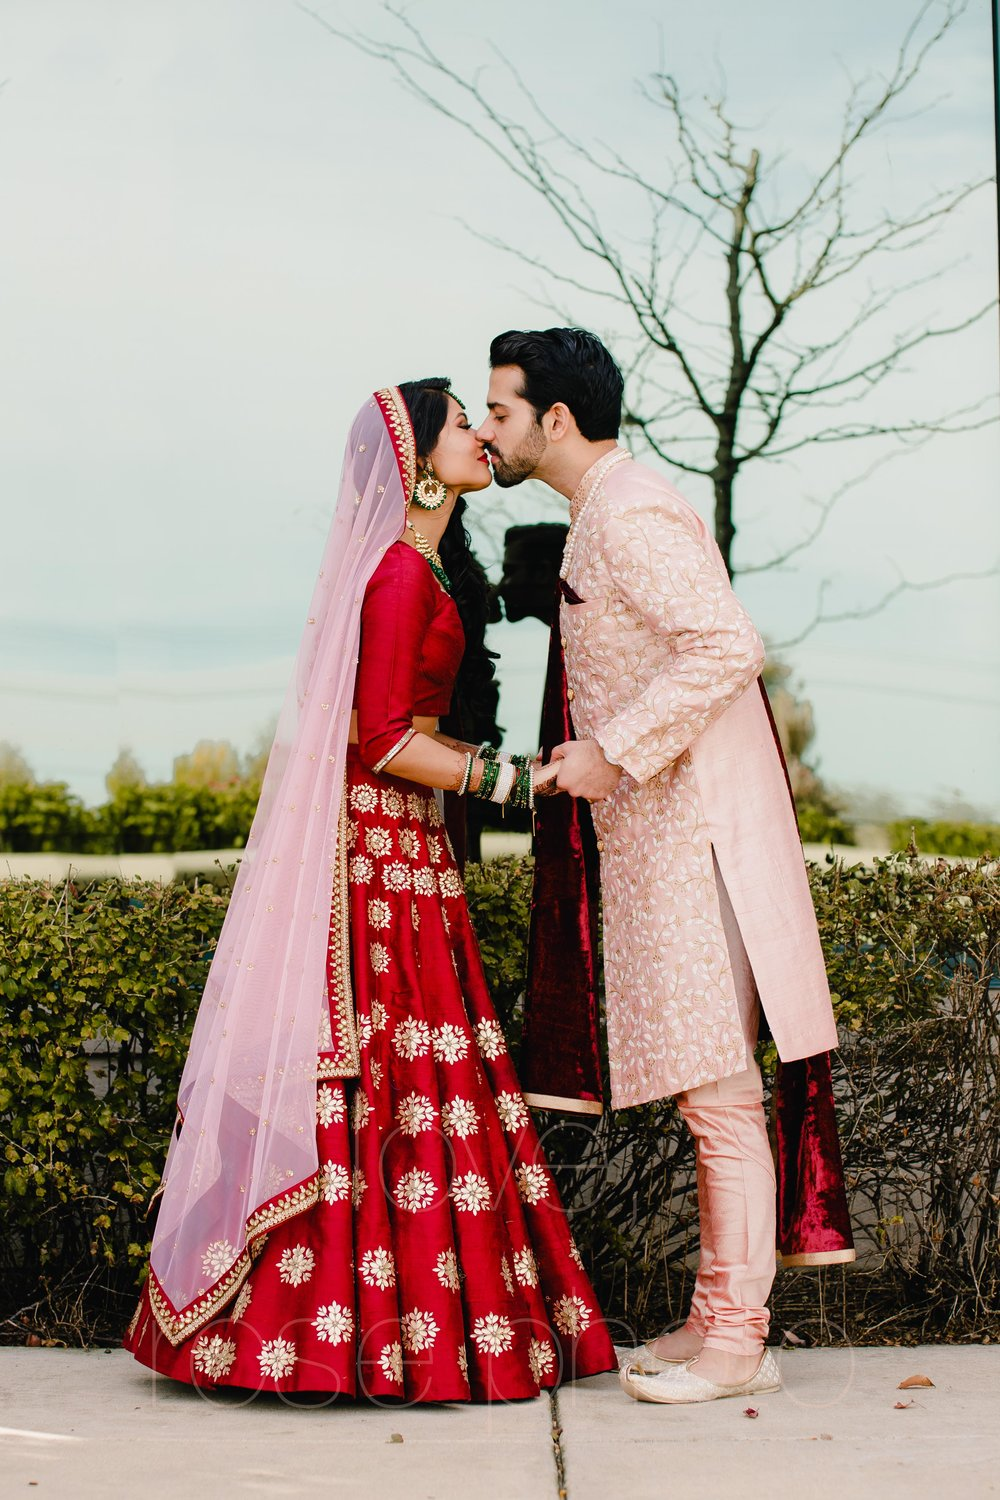 Chicago Indian Wedding best photography lifestyle wedding portrait luxury wedding-8.jpg